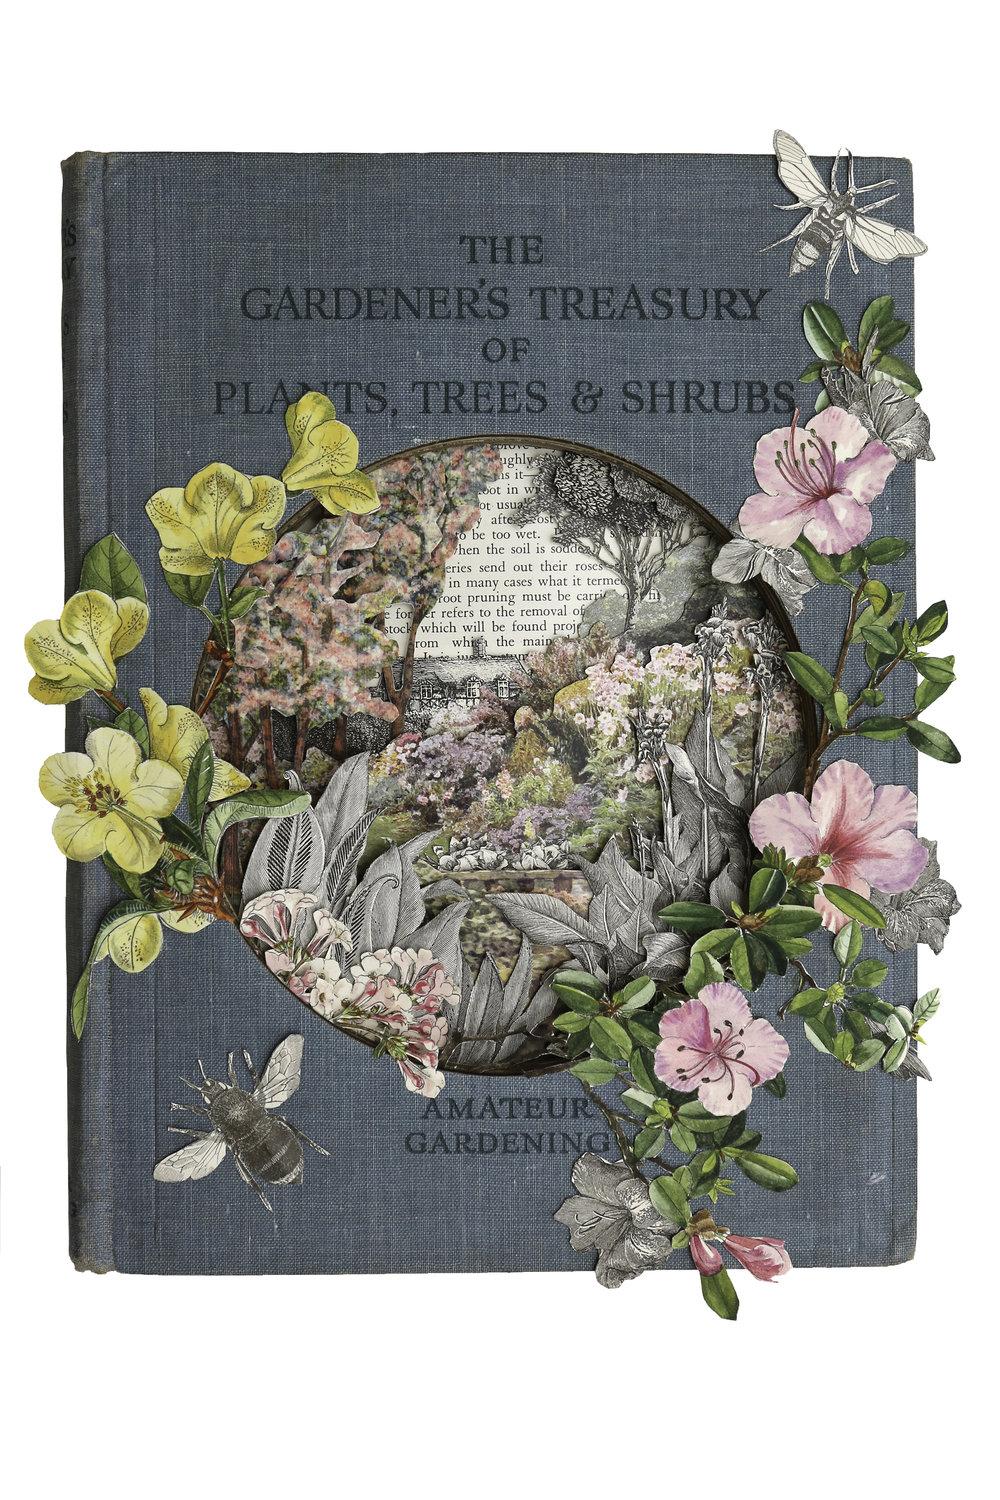 The Gardener's Treasury of Plants, Trees & Shrubs.jpg